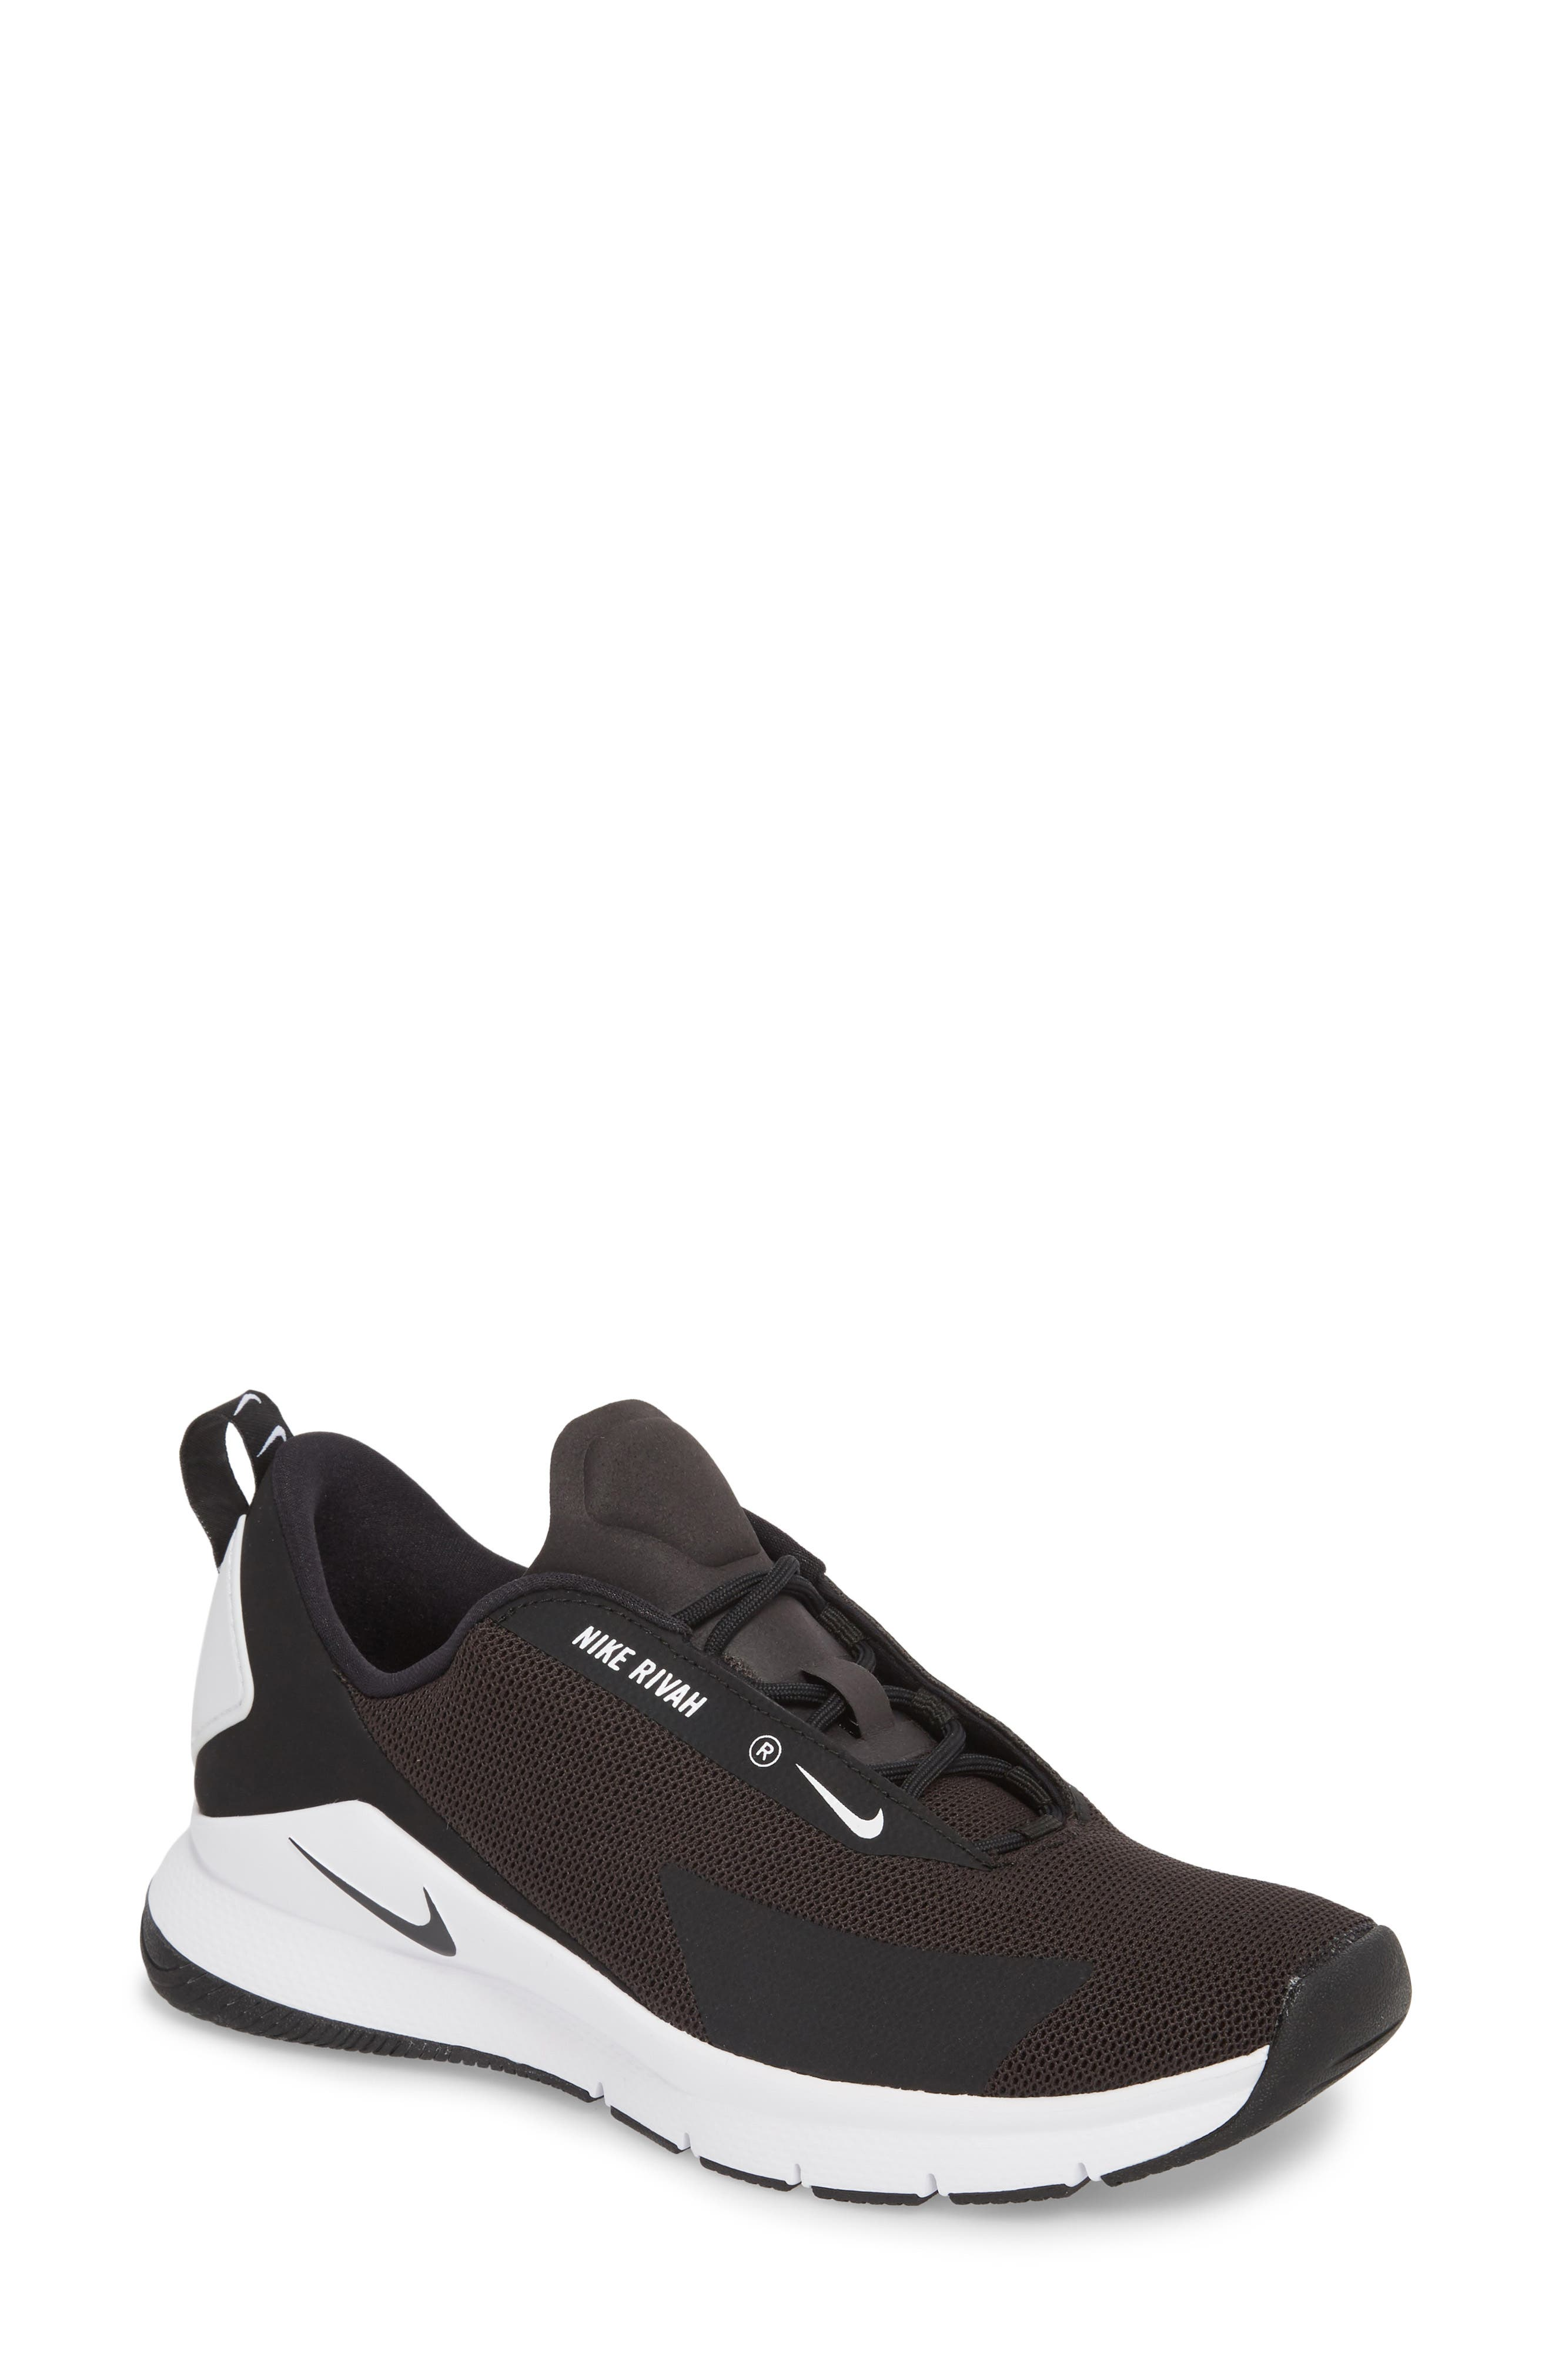 Rivah Sneaker,                         Main,                         color, Black/ Black/ White